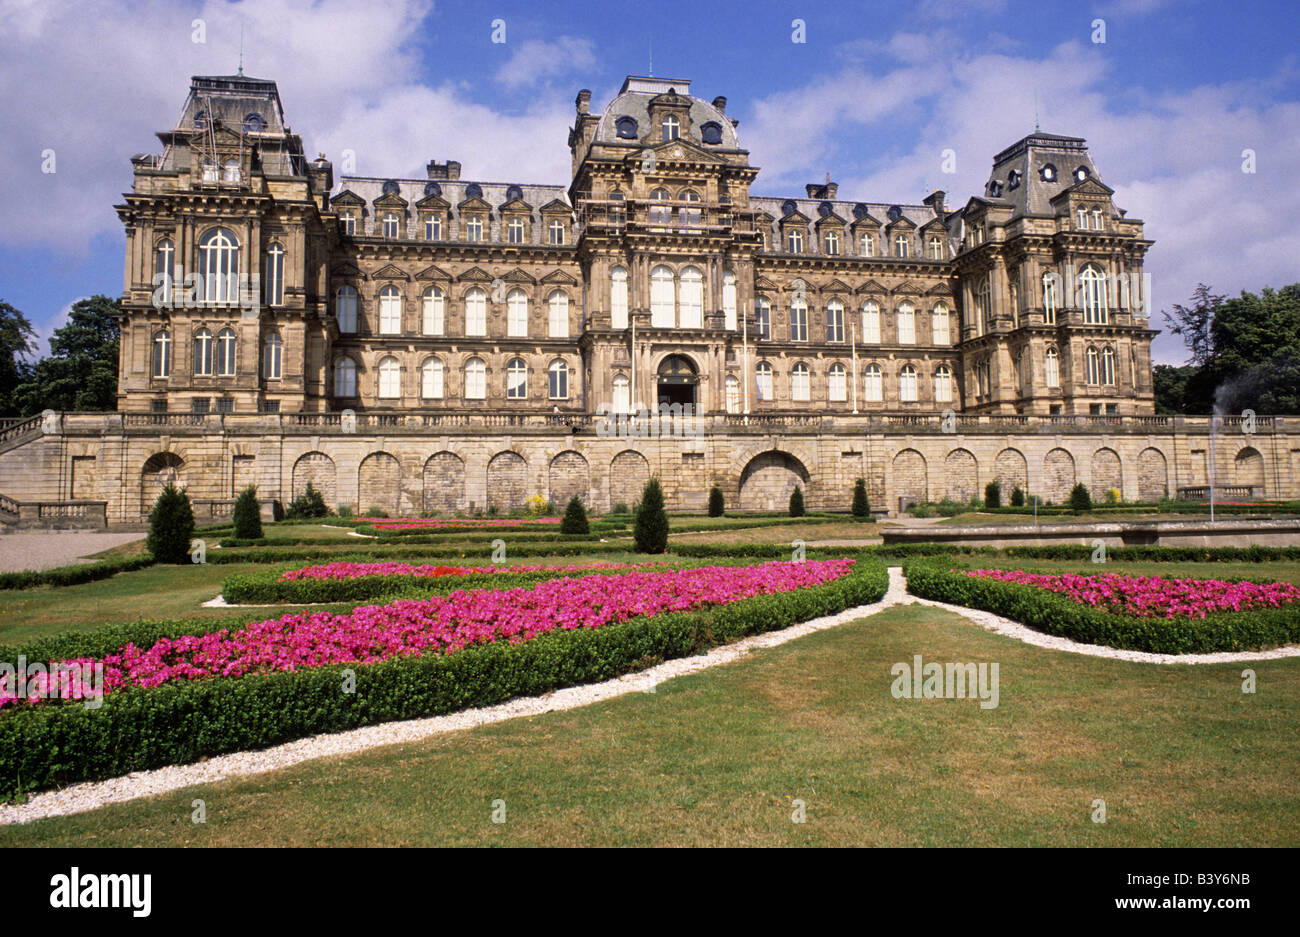 The Bowes Museum Castle Barnard County Durham England UK French chateau style building architecture - Stock Image